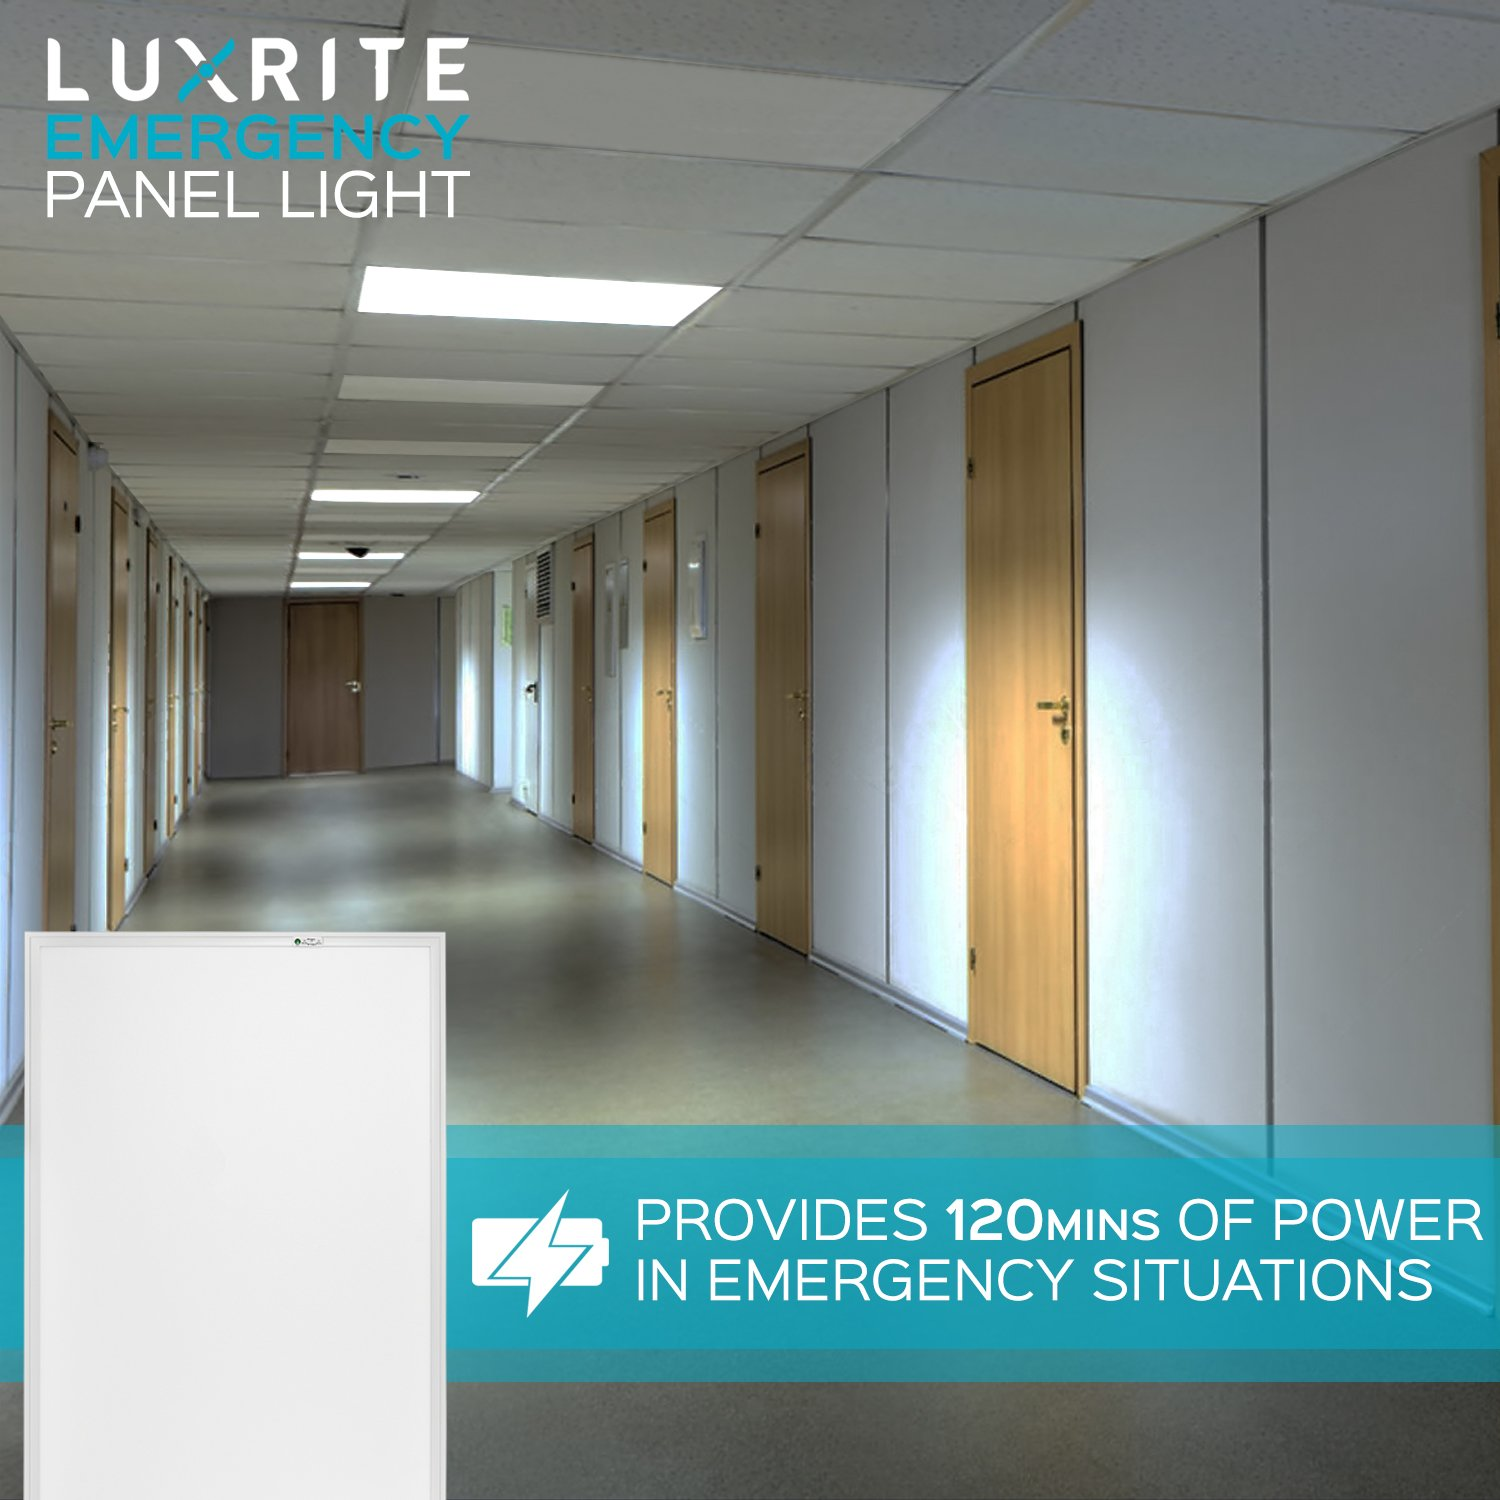 Luxrite 2x4 LED Flat Panel Light with Emergency Battery Backup, 60W 3500K Natural White, 0-10V Dimmable, 6630 Lumens, LED Drop Ceiling Lights, 100-277V, DLC and UL Listed, Ultra Thin Edge-Lit by LUXRITE (Image #4)